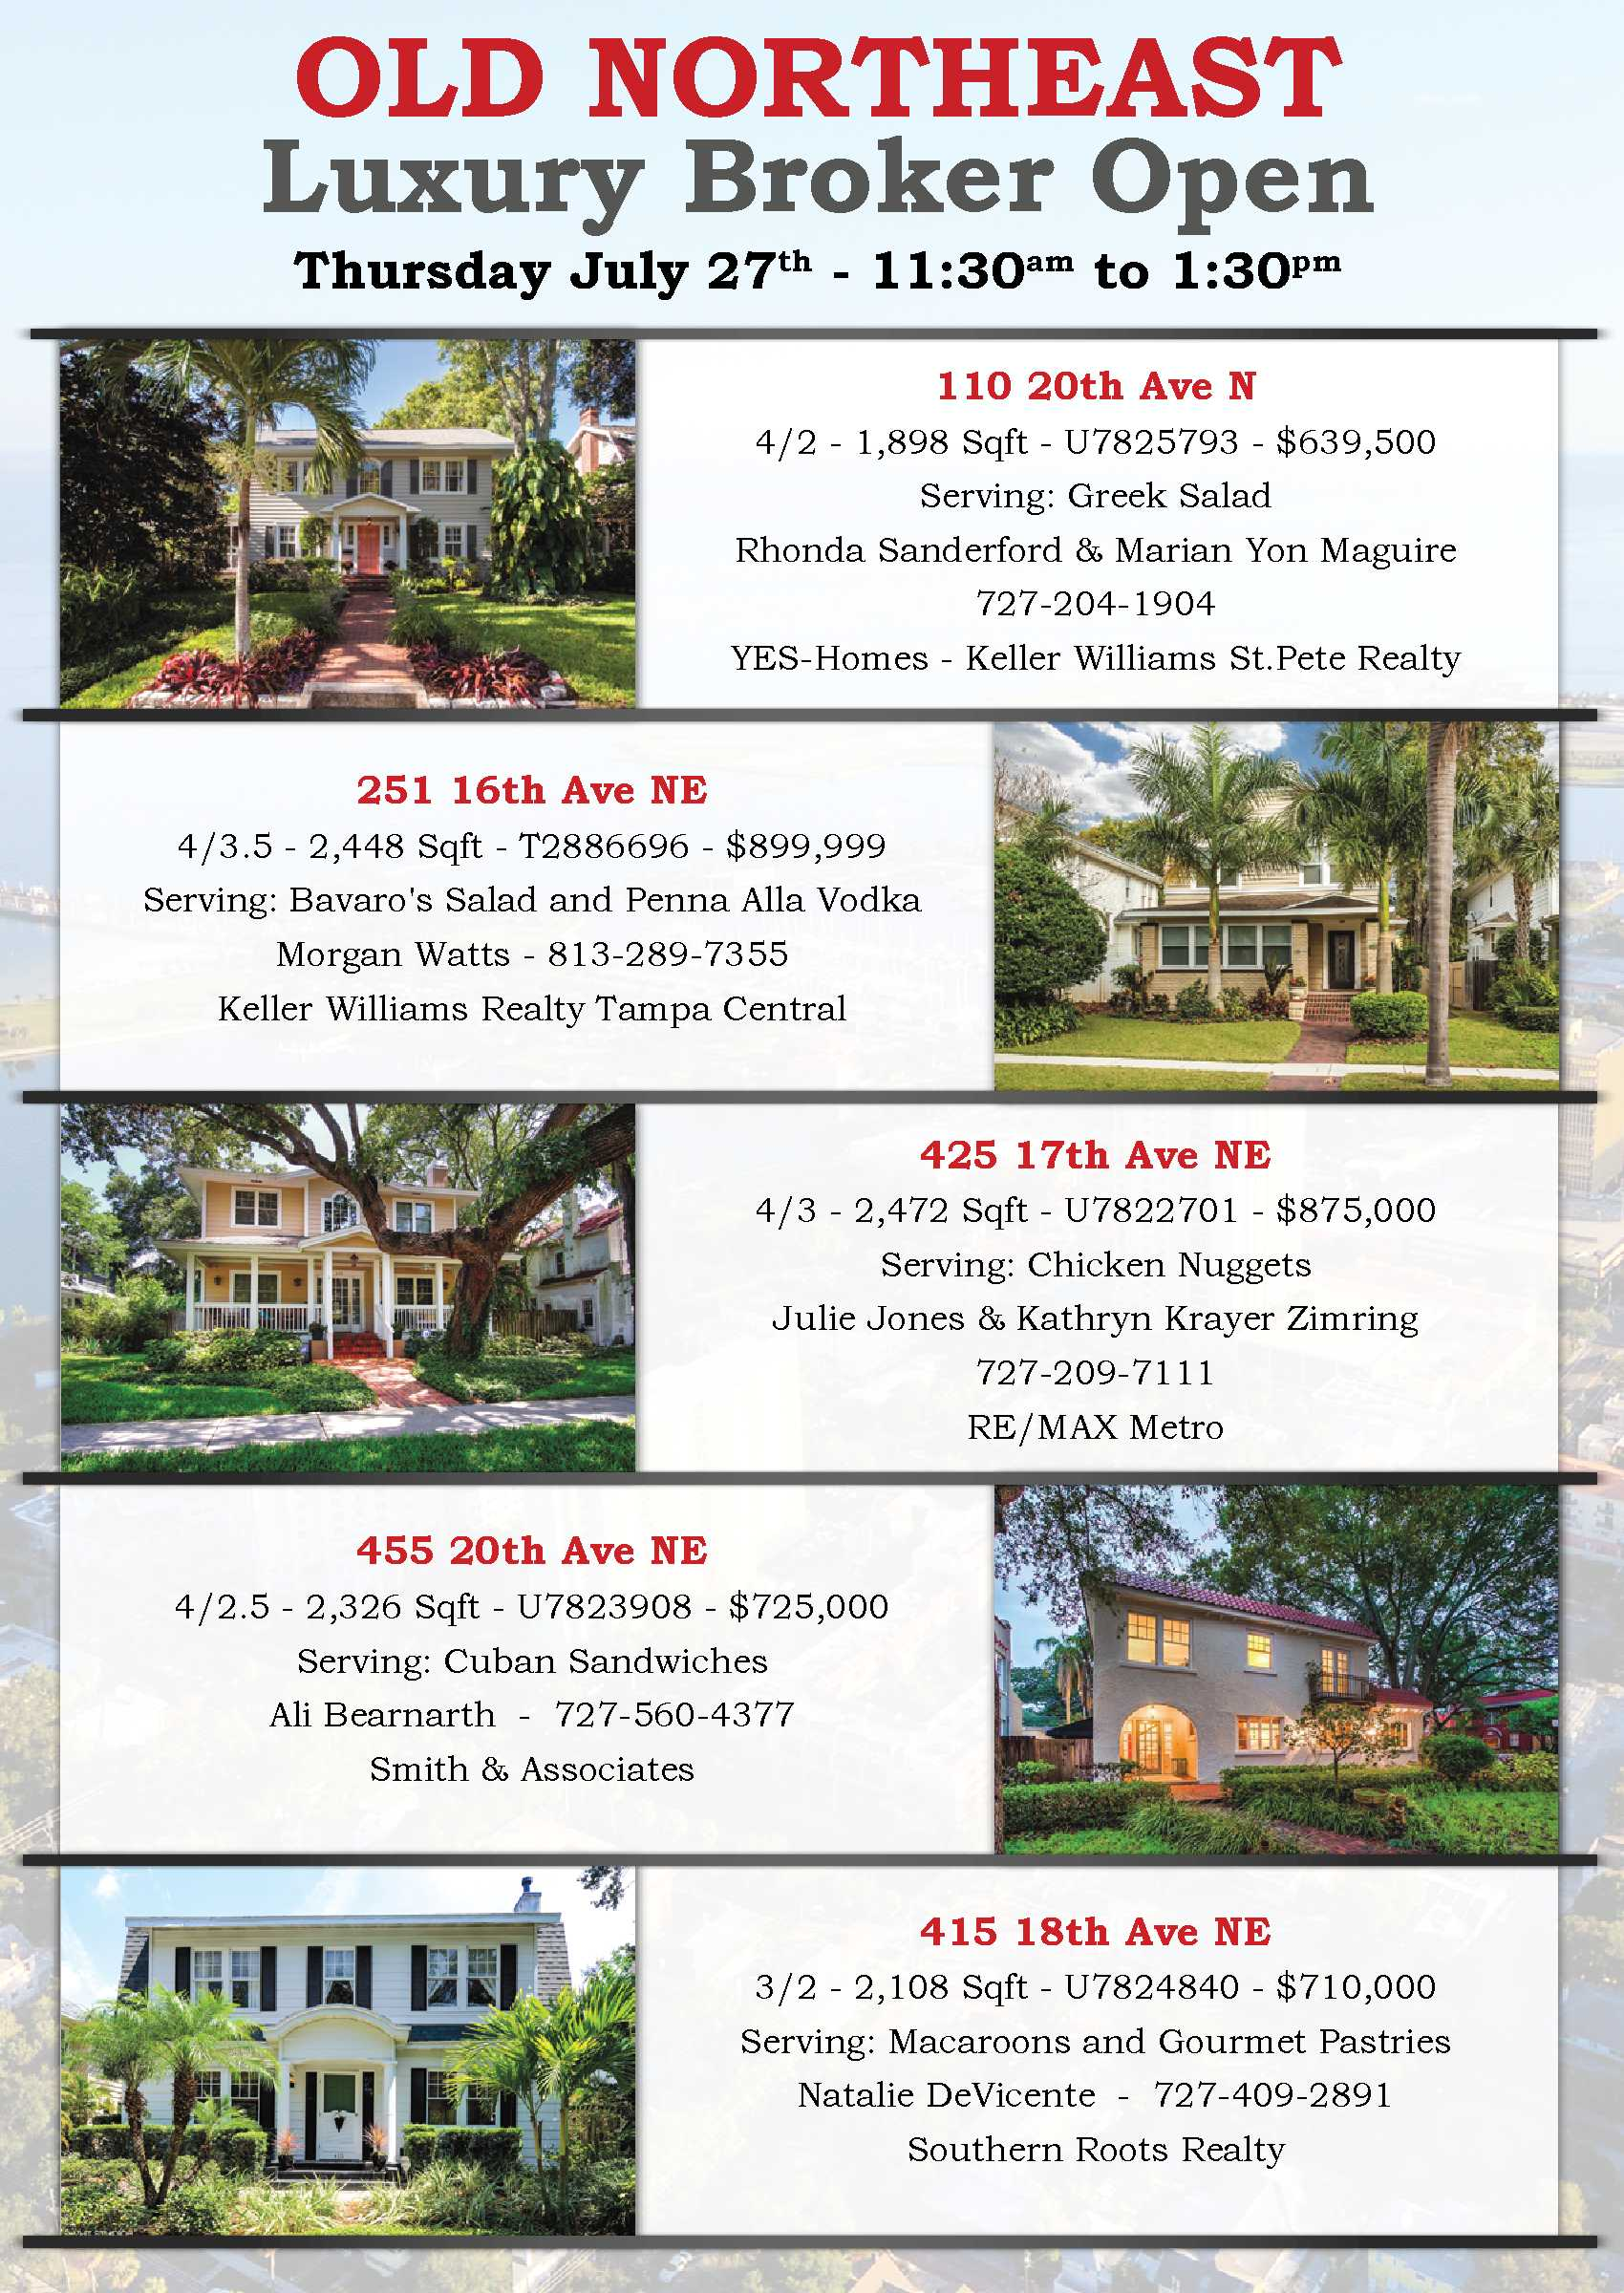 Brokers Open Thursday July 27th